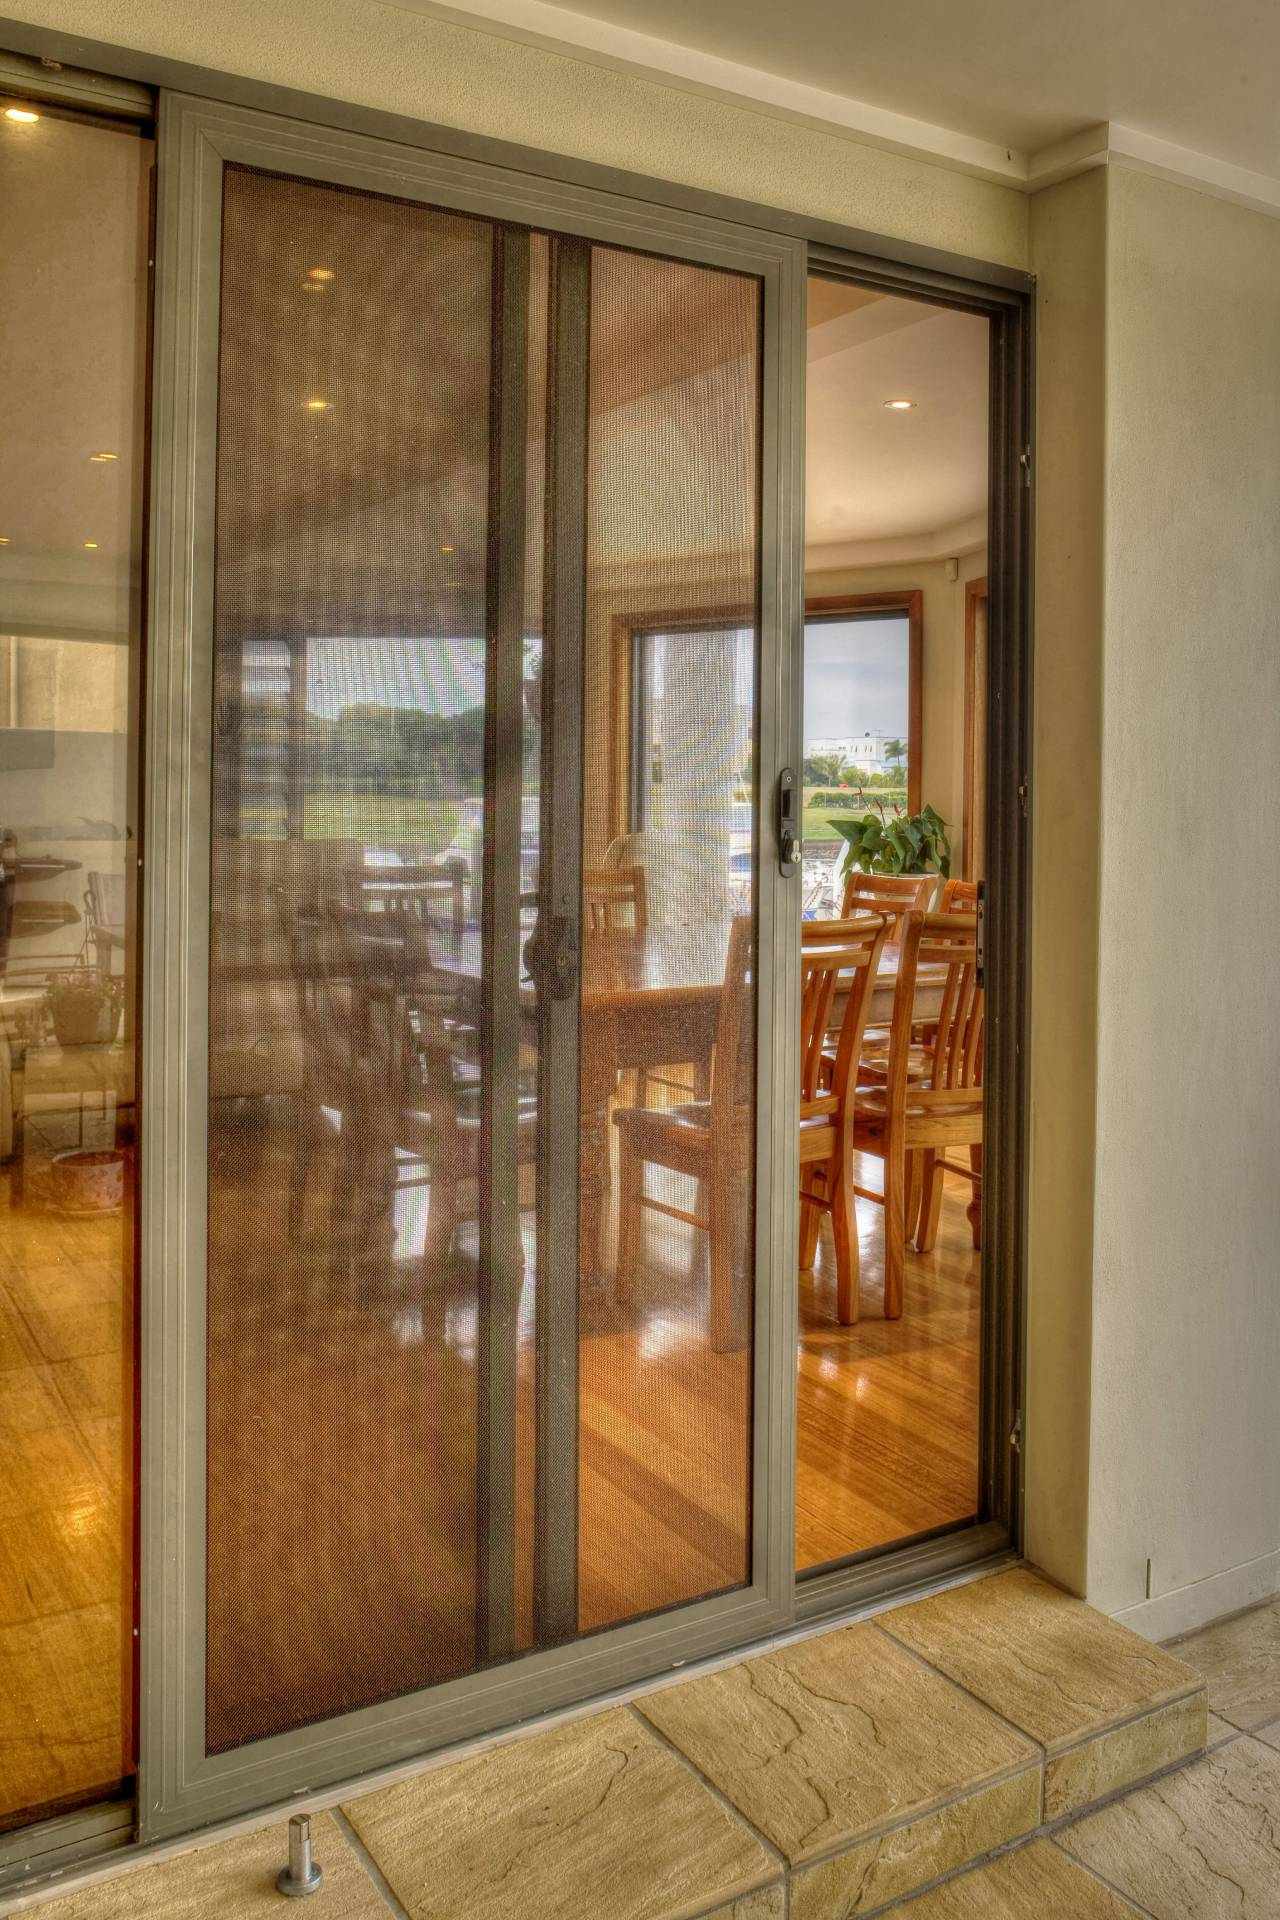 Screen Mesh Security Sliding Doors